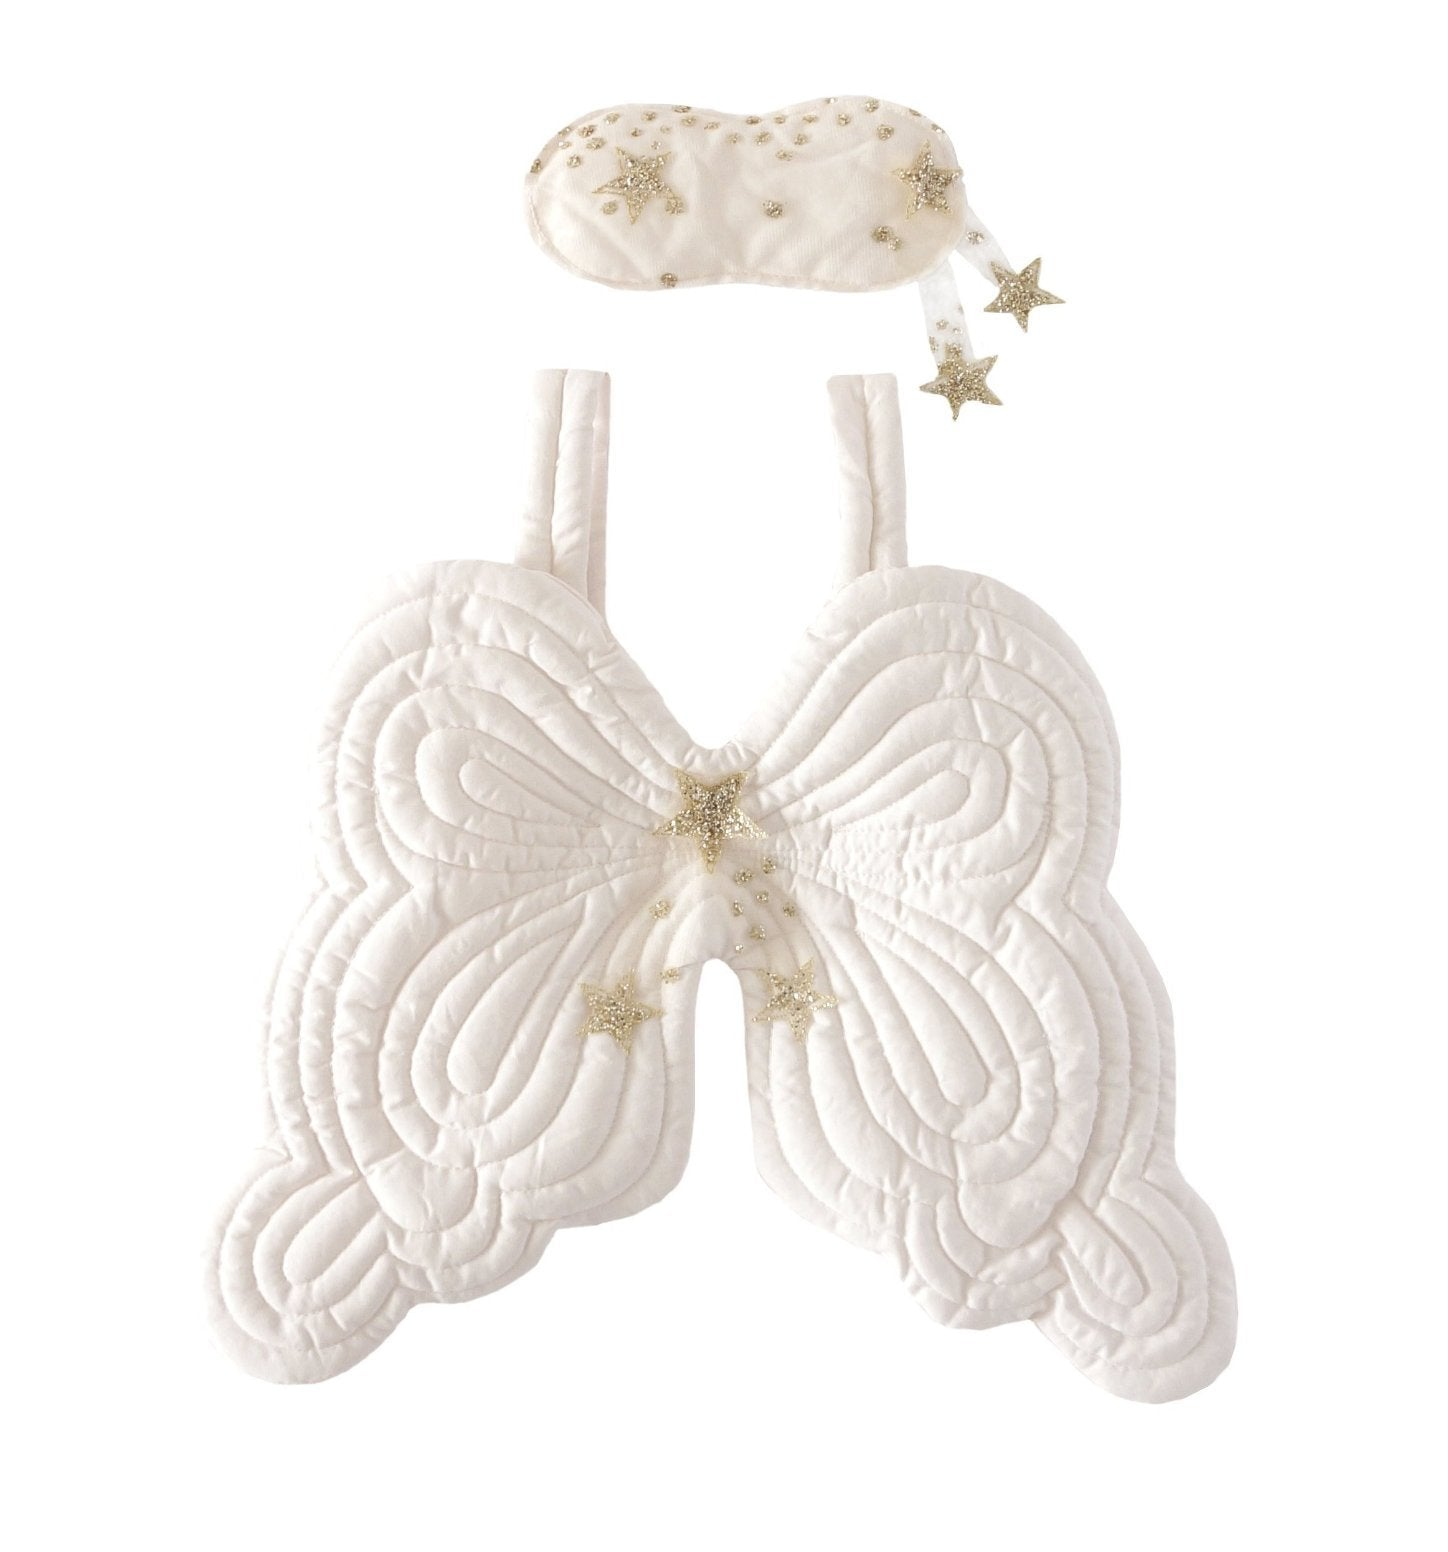 Bonne Mère Starry Nights Eyemask & Angel Wings - Powder